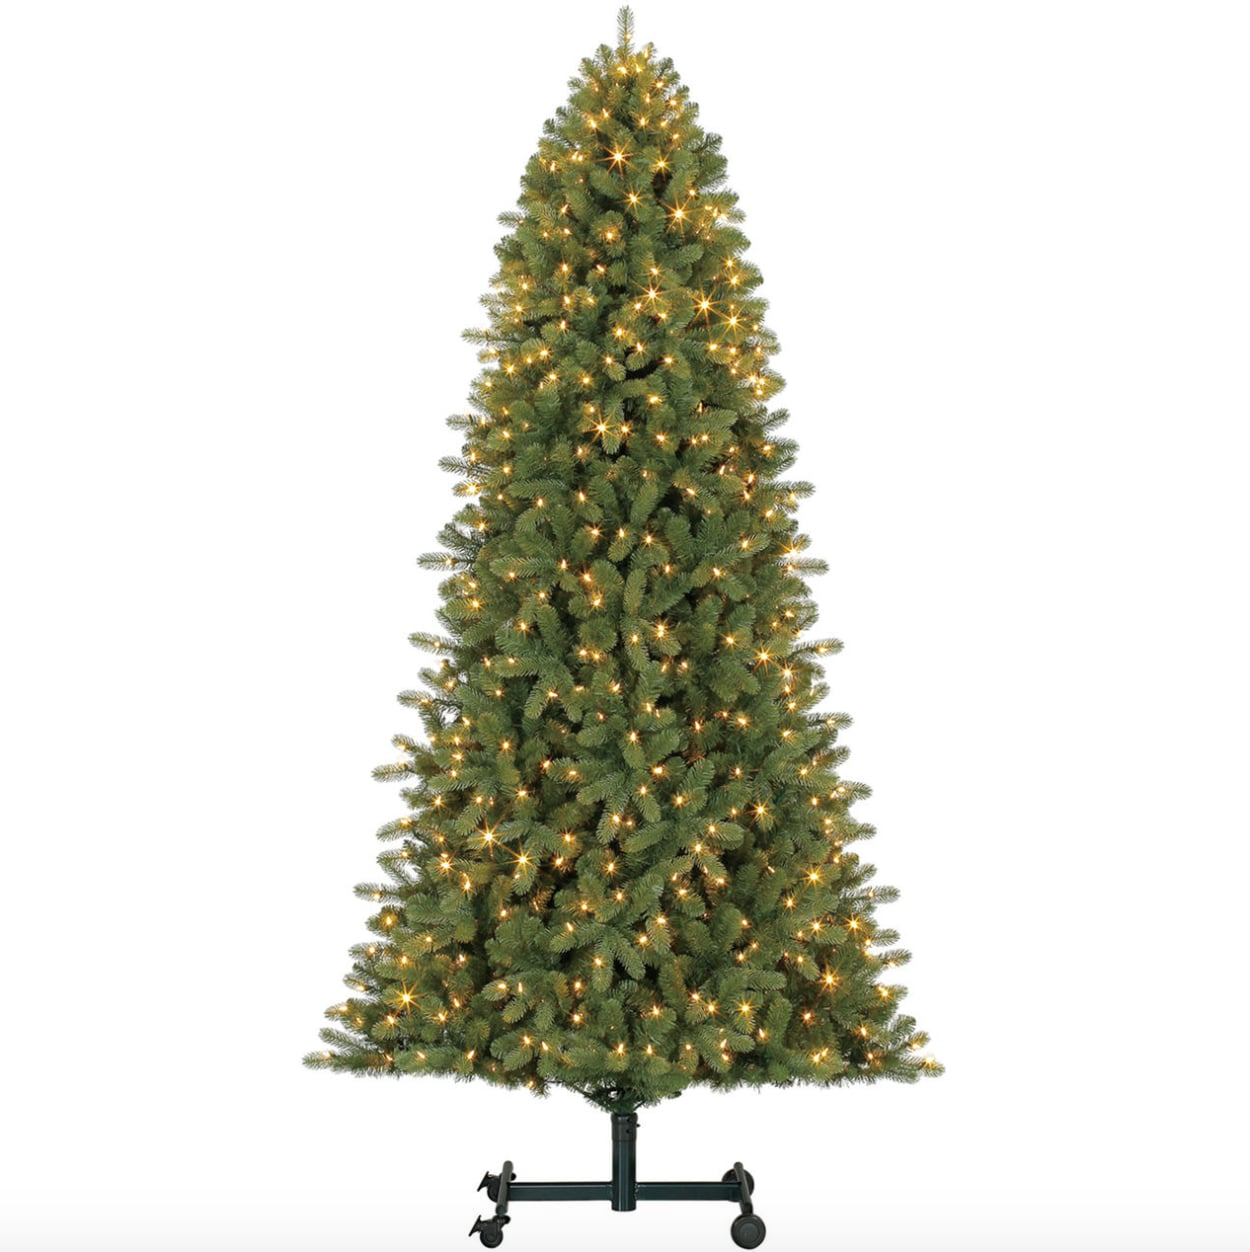 Superior Itu0027s A Struggle That Many Of Us Face Every Year: Putting Up The Christmas  Tree. Whether You Assemble A Faux Tree Or Cut Down Your Own Evergreen Every  Year, ...